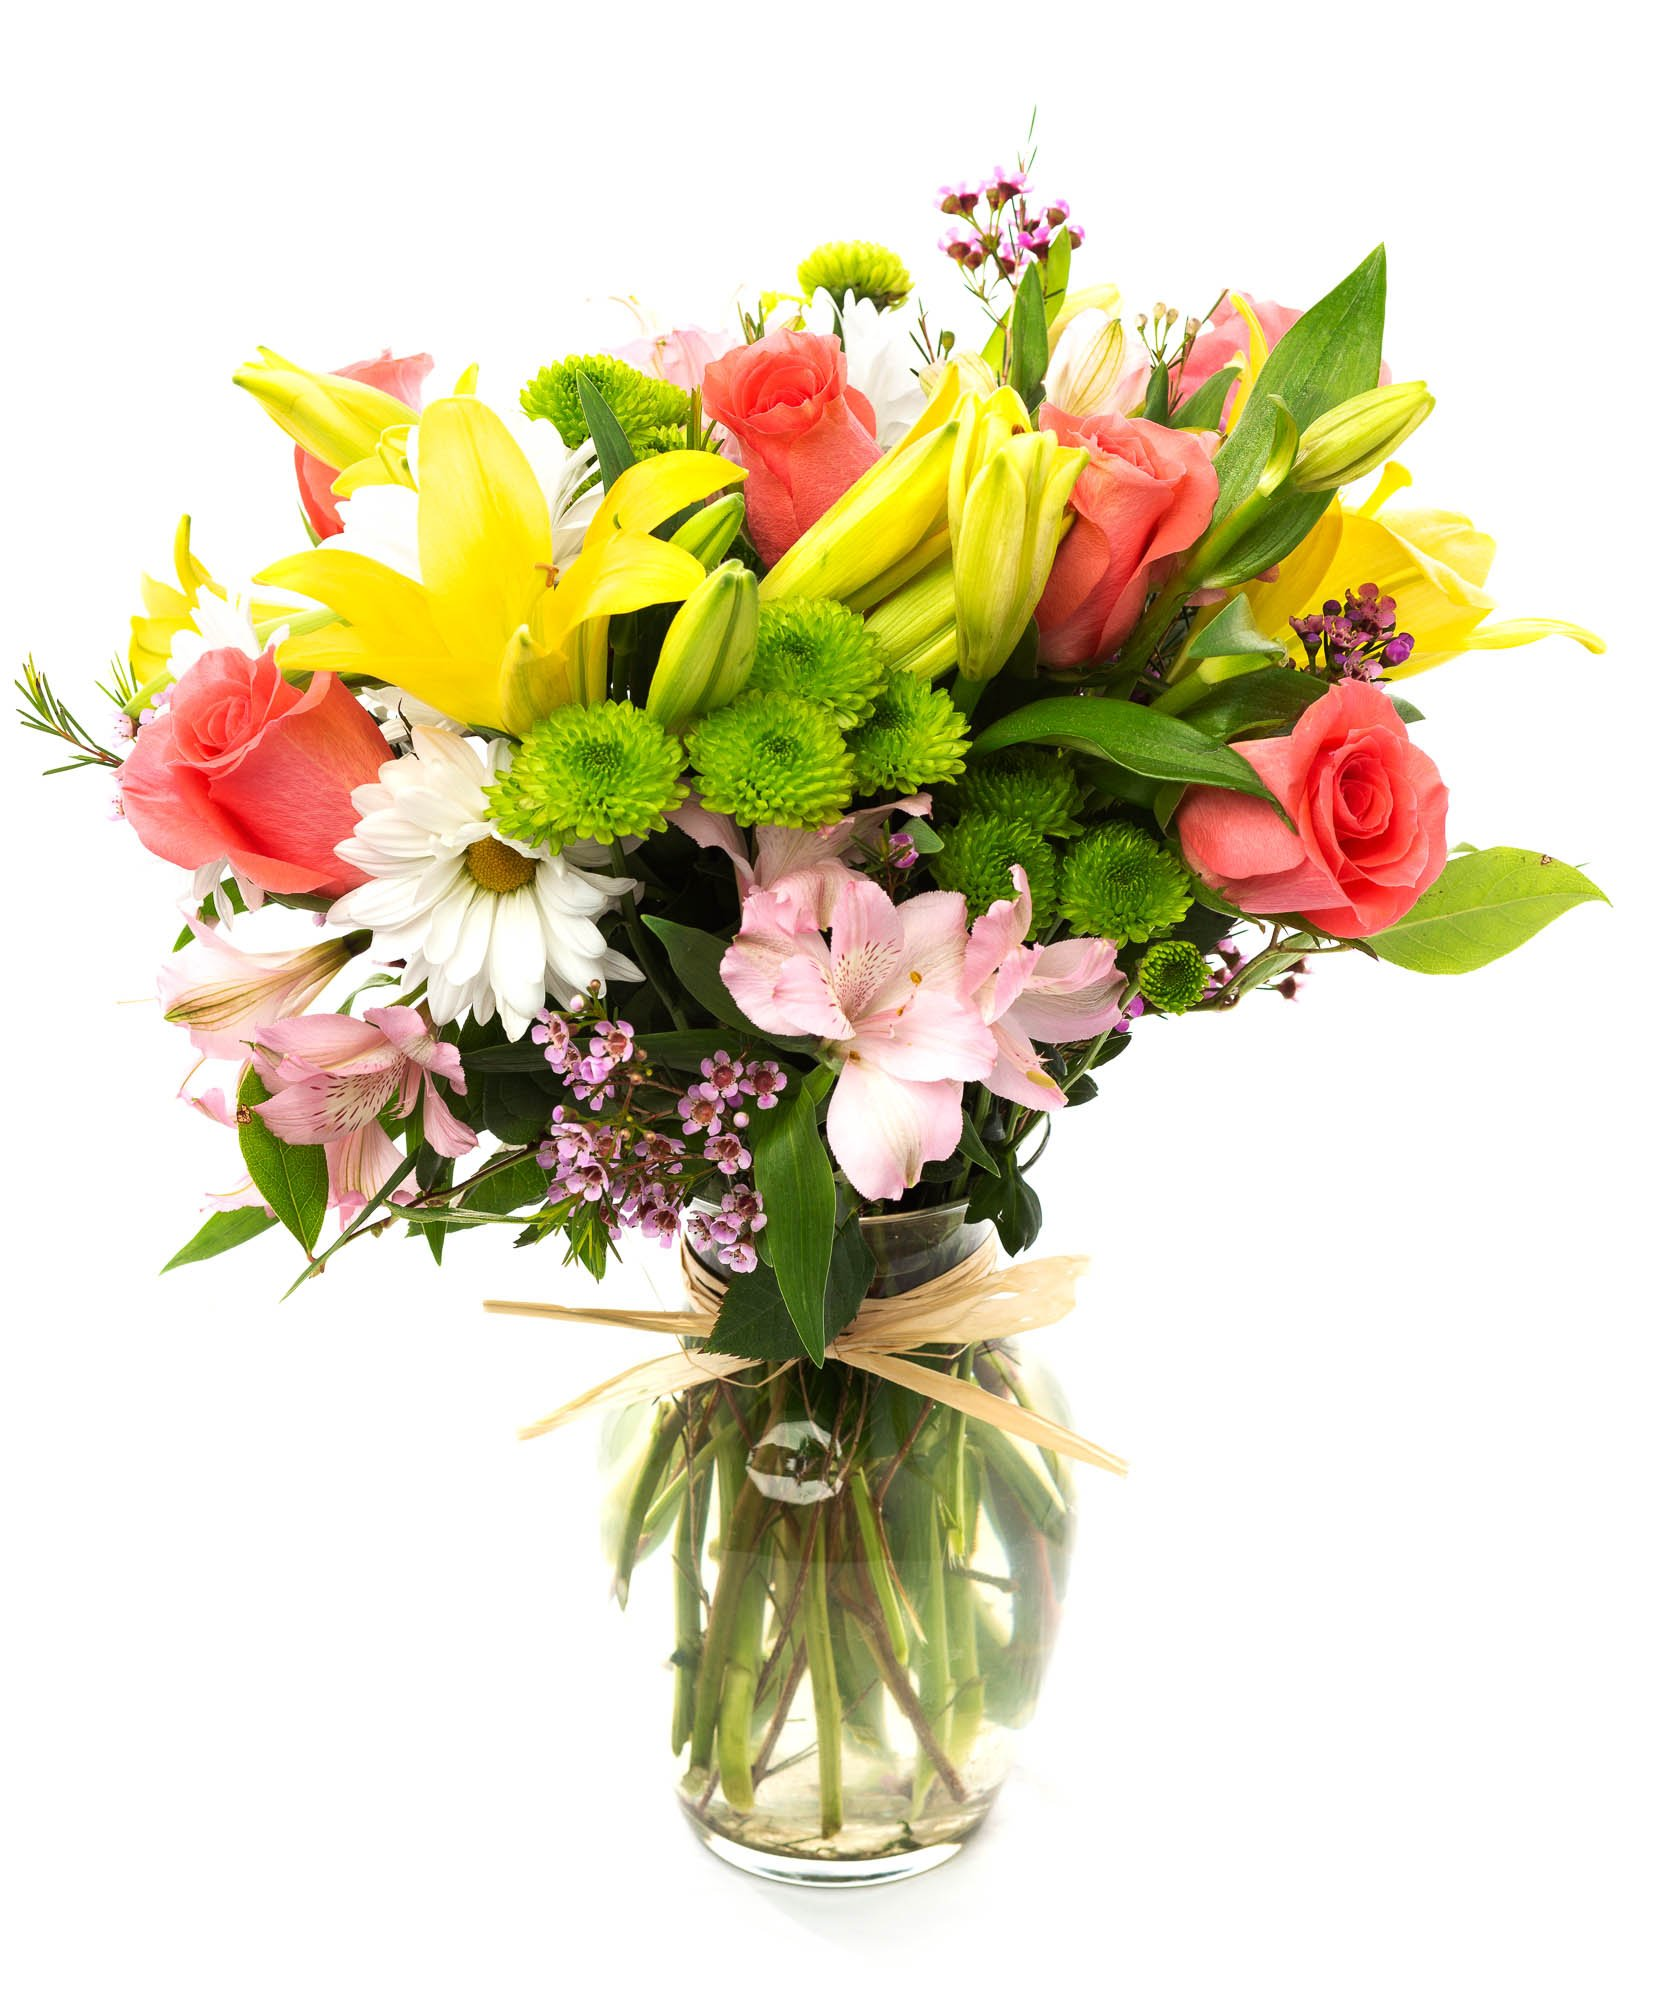 FLWERZ [Fields of Lushness] Natural Beautiful Hand-crafted Colorful Springtime Mother's Day Bouquet with 8oz clear Glass Vase